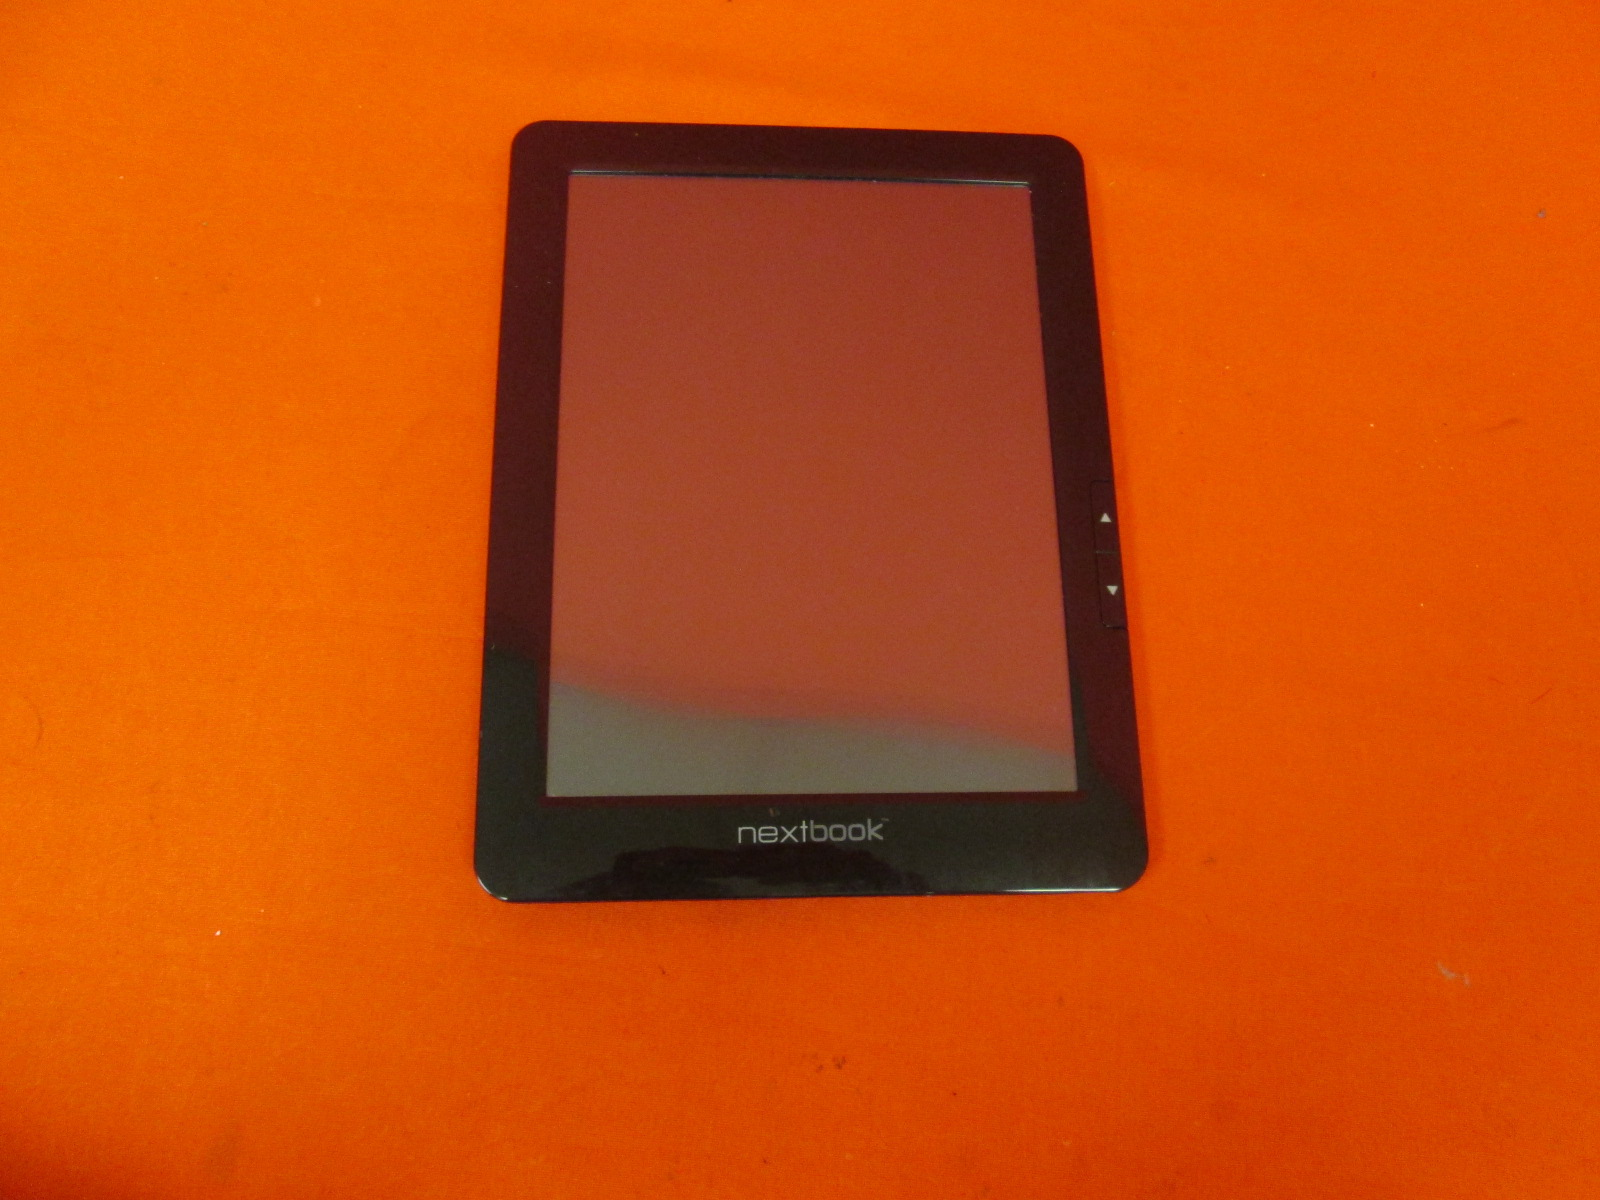 Nextbook NEXT3 Touchscreen Reader W/android Tablet